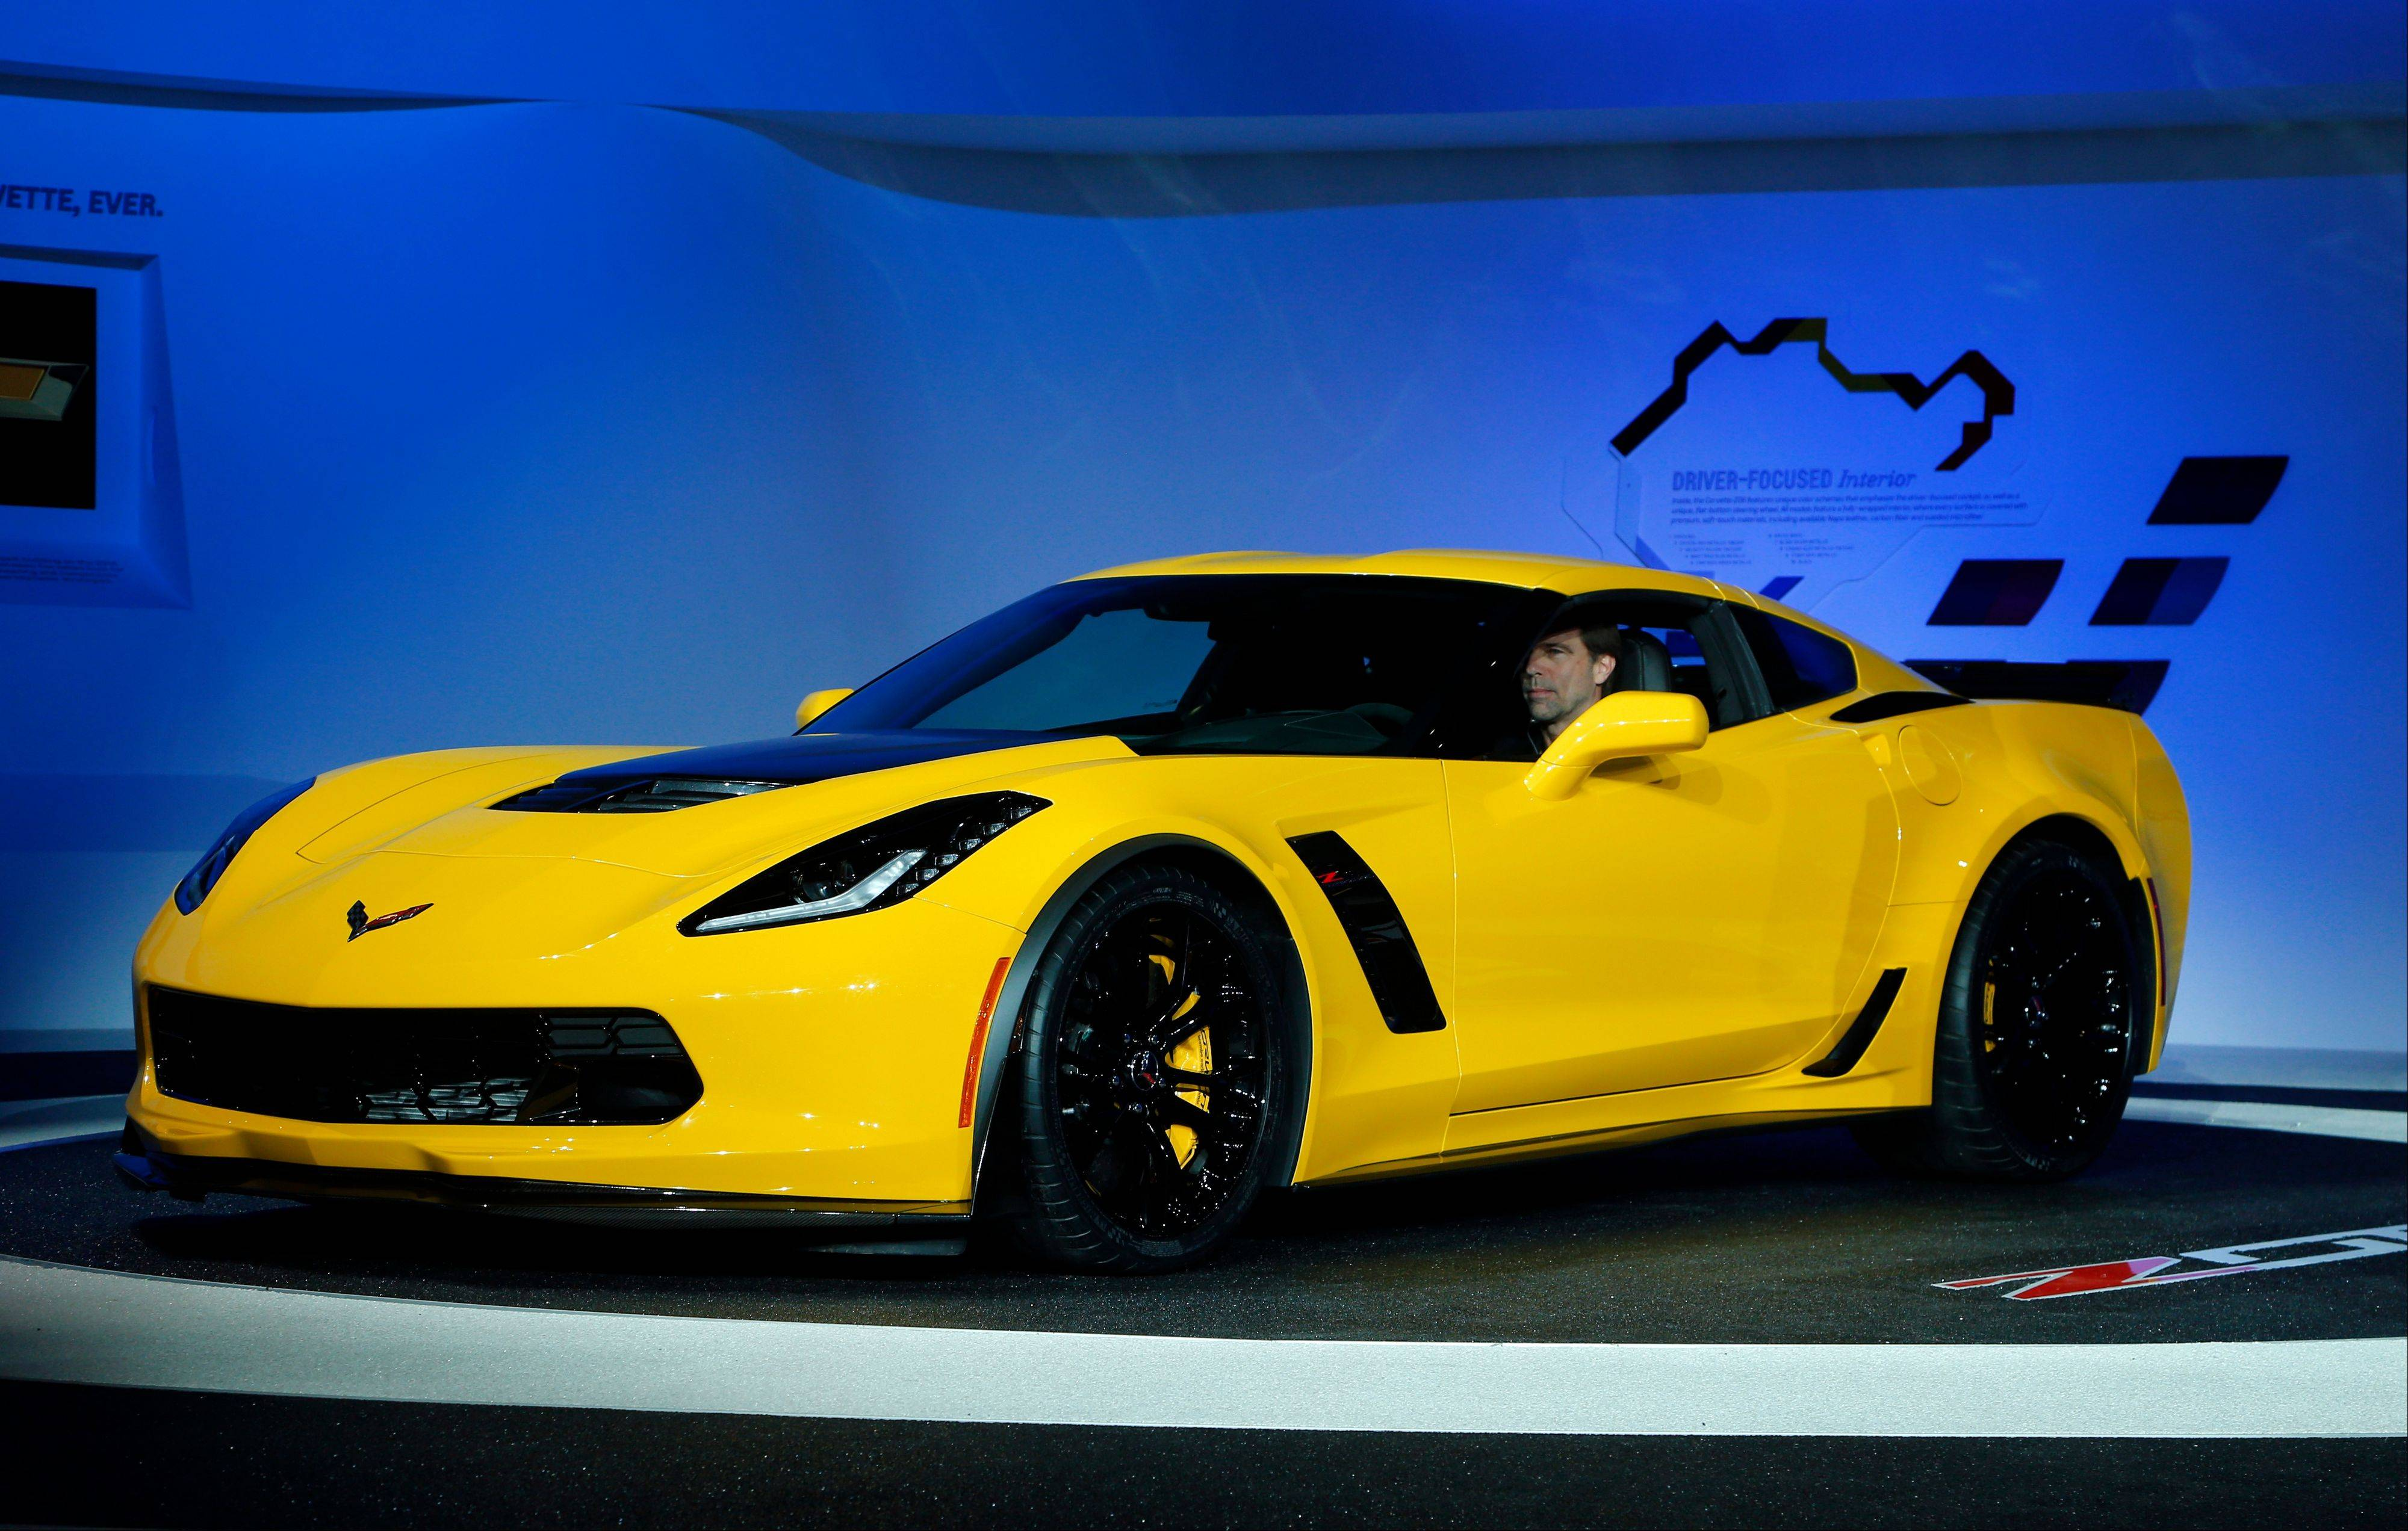 Gear heads won't be able to resist the 2015 Chevrolet Corvette Z06 at the Chicago Auto Show.